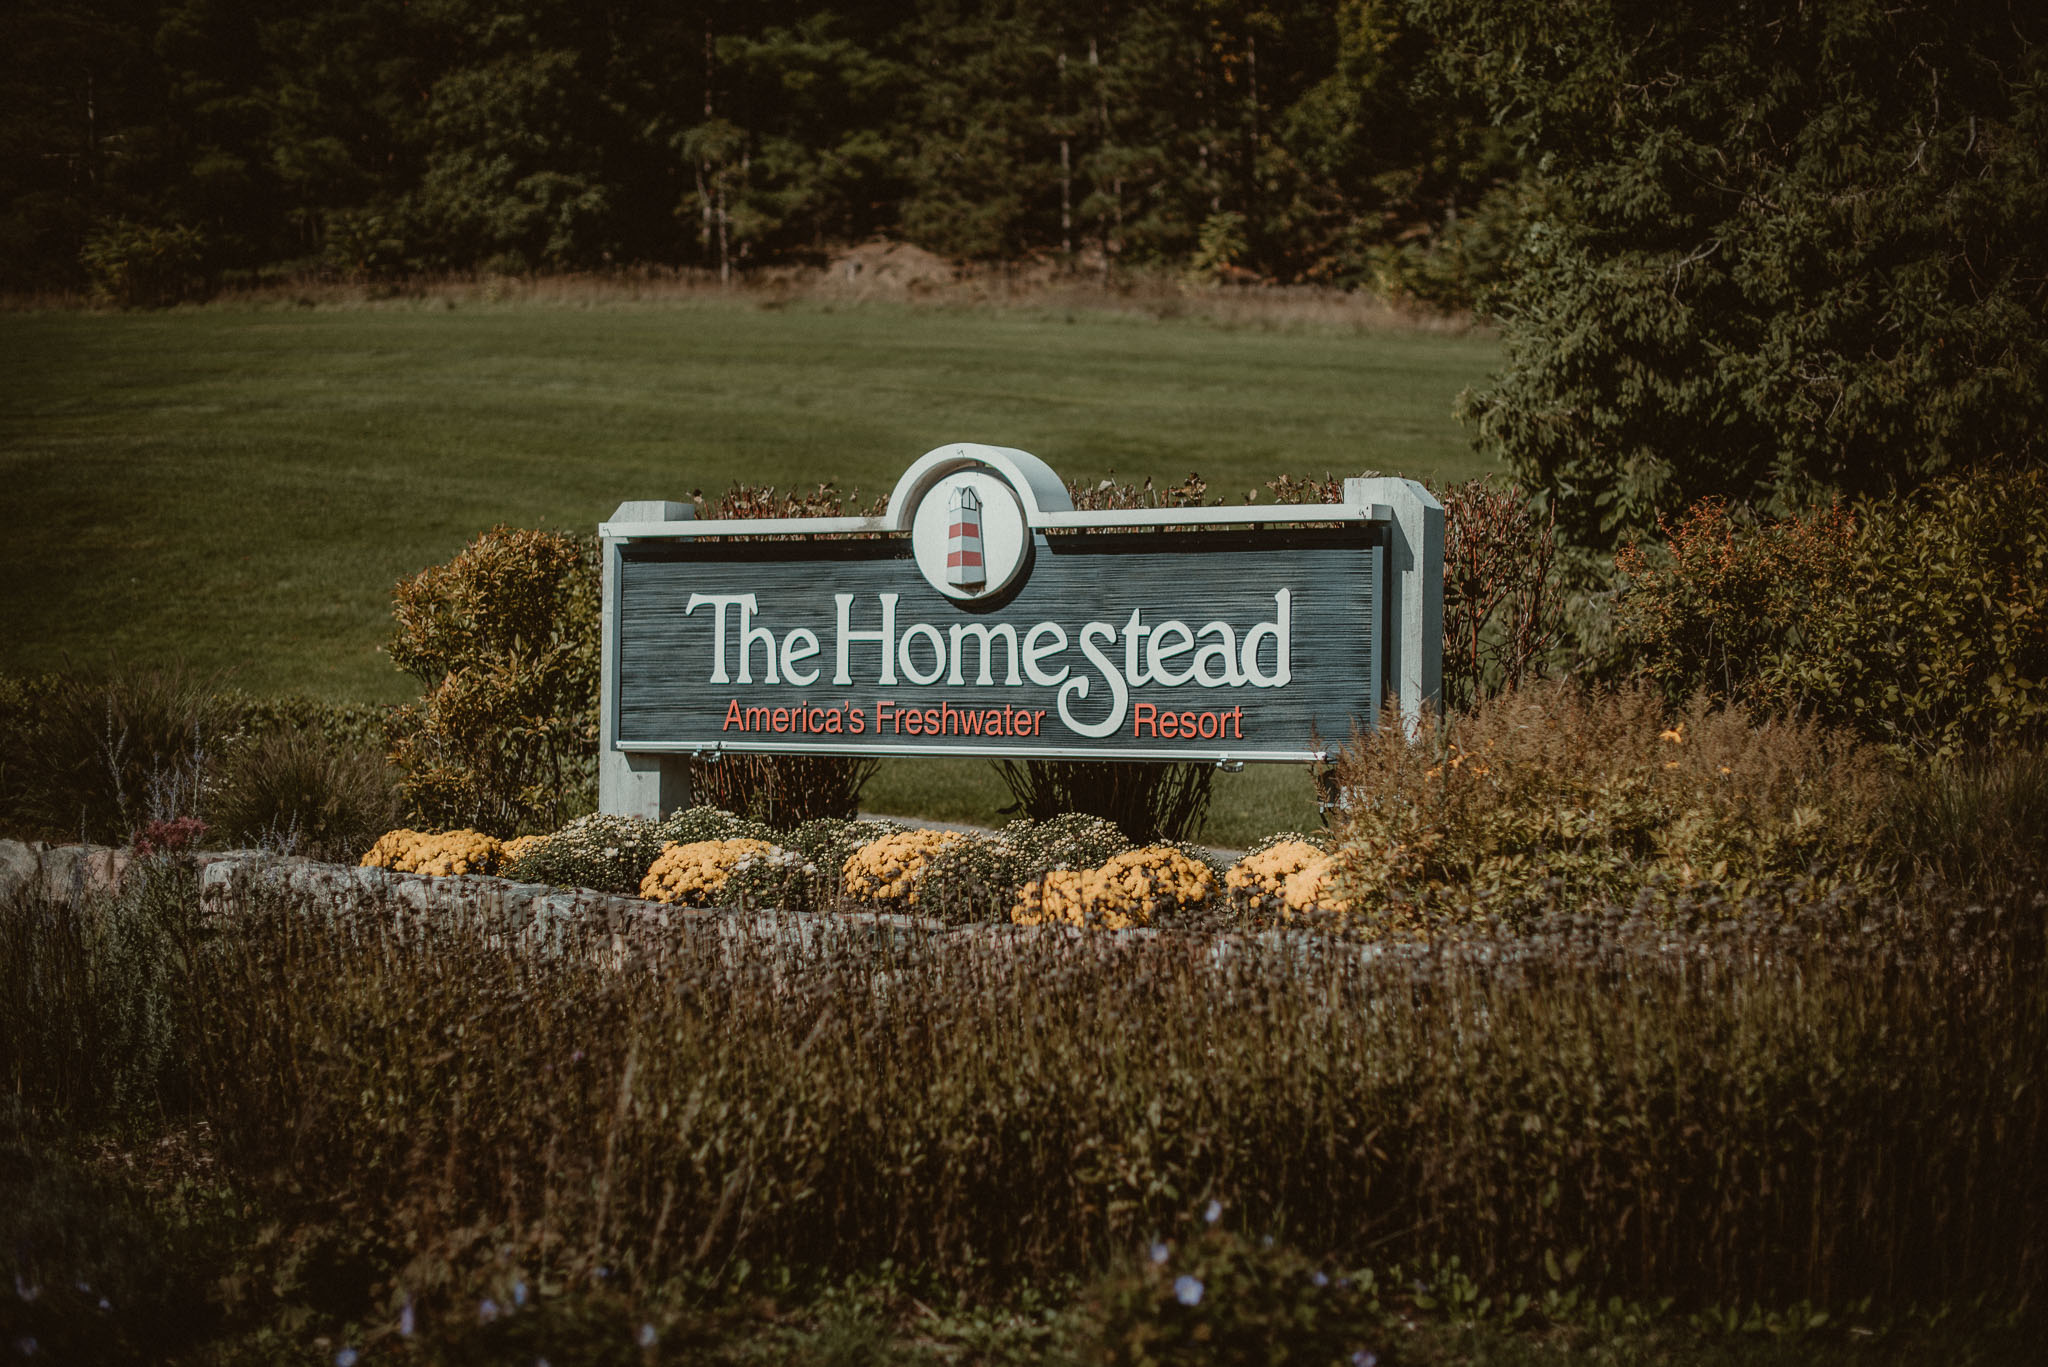 The Homestead entrance sign